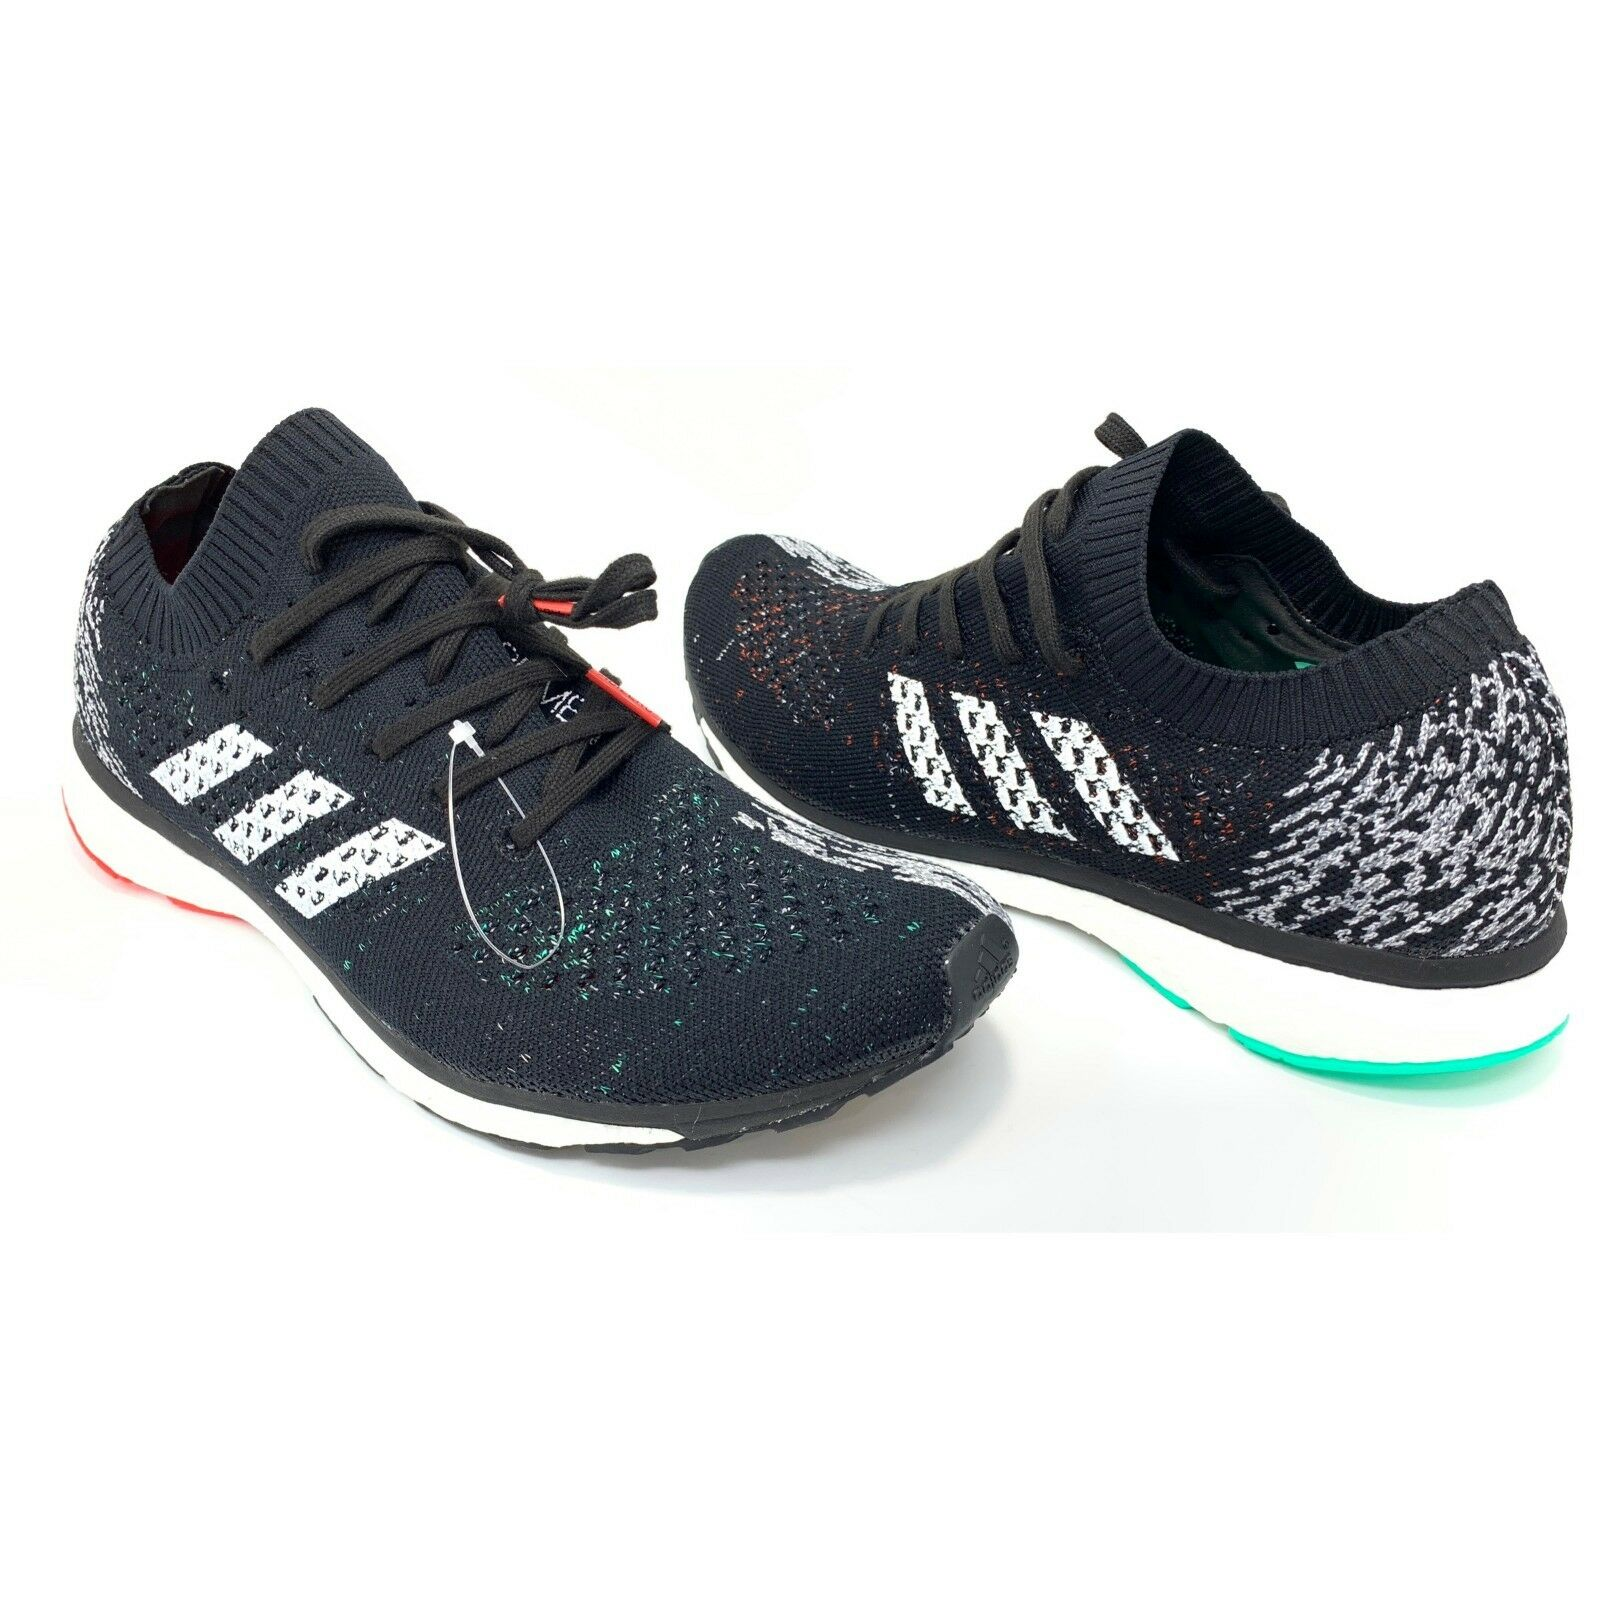 best service 58b30 e5167 Adidas Adizero Sz Prime Boost LTD Mens White Ultra Running shoes CP8922 9.5  Black nxracf503-Men s Athletic Shoes